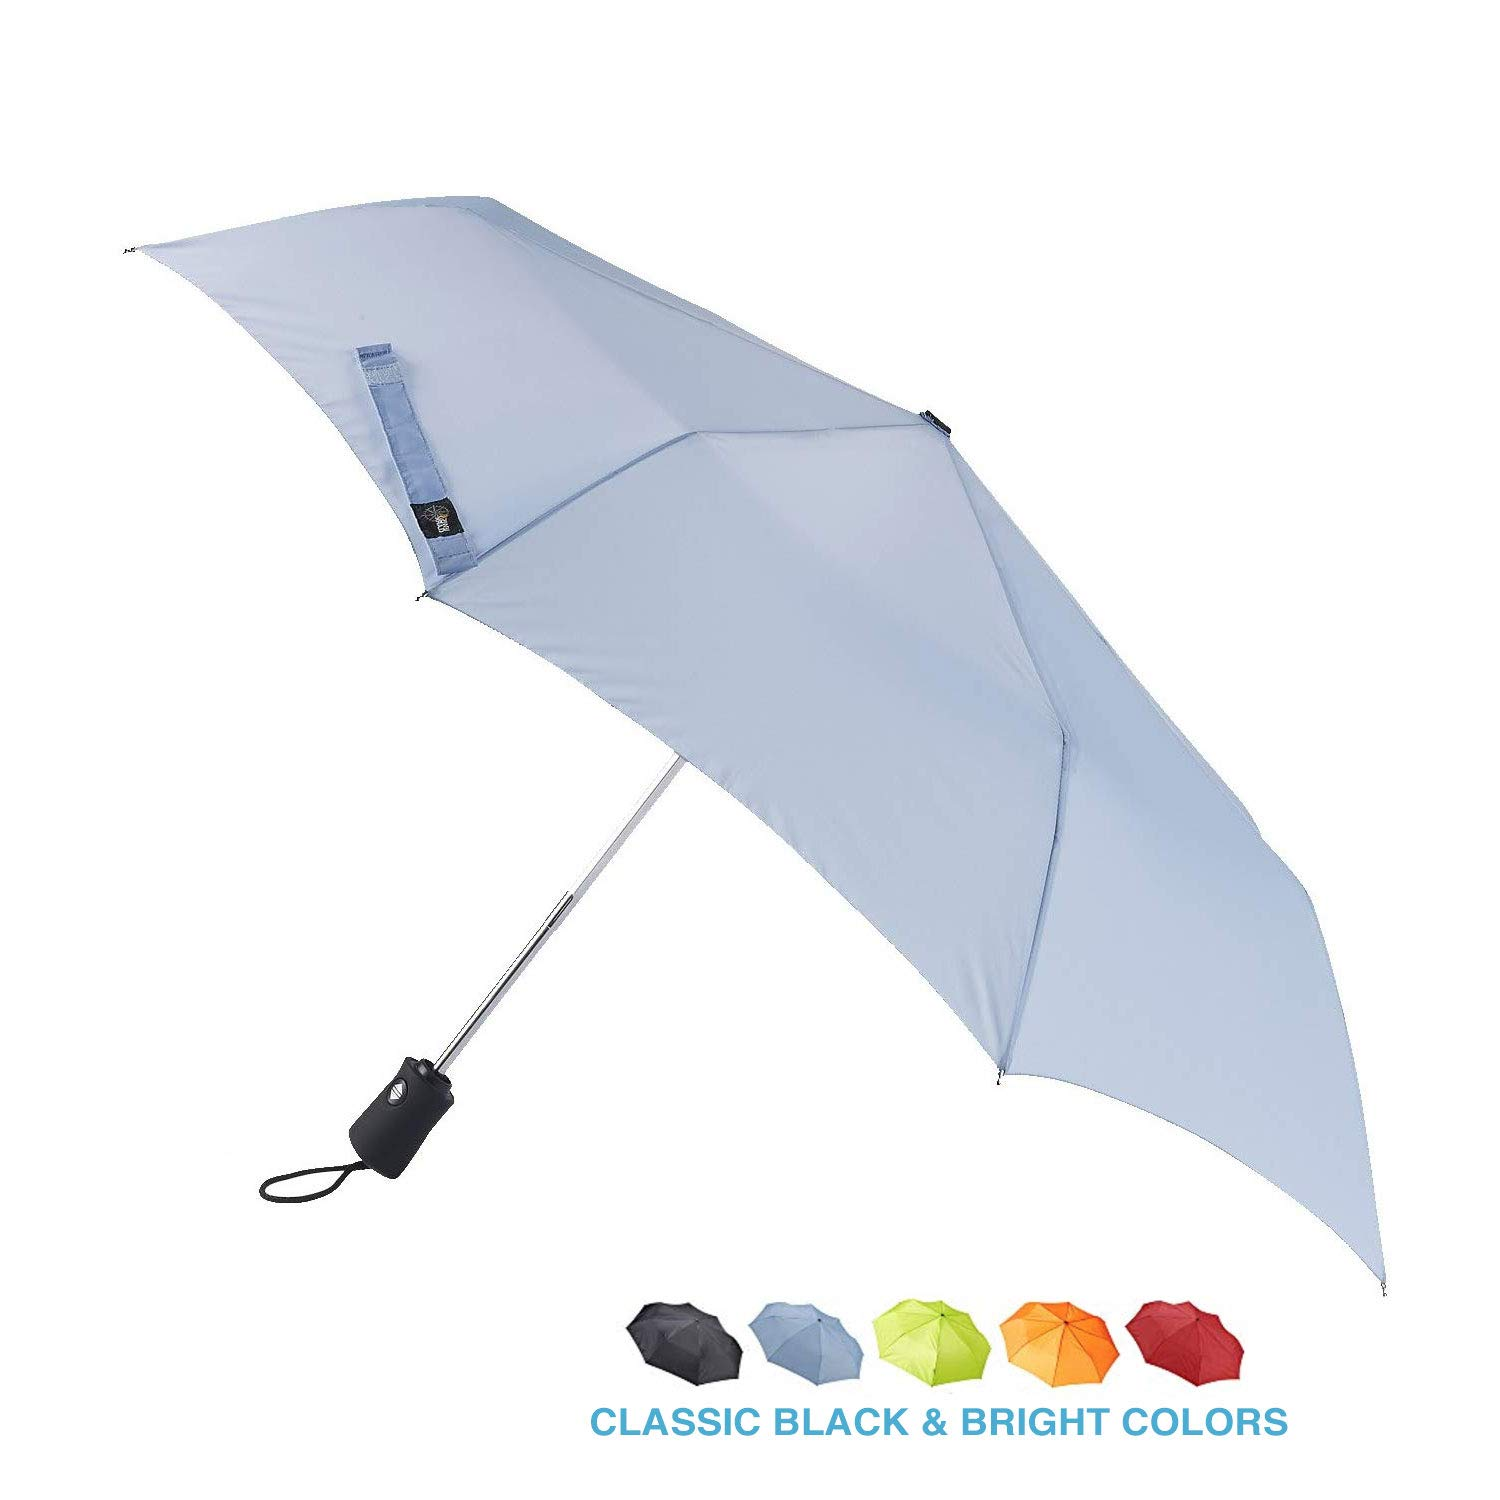 Lewis N. Clark Travel Umbrella: Windproof & Water Repellent with Mildew Resistant Fabric, Automatic Open Close & 1 Year Warranty, Blue